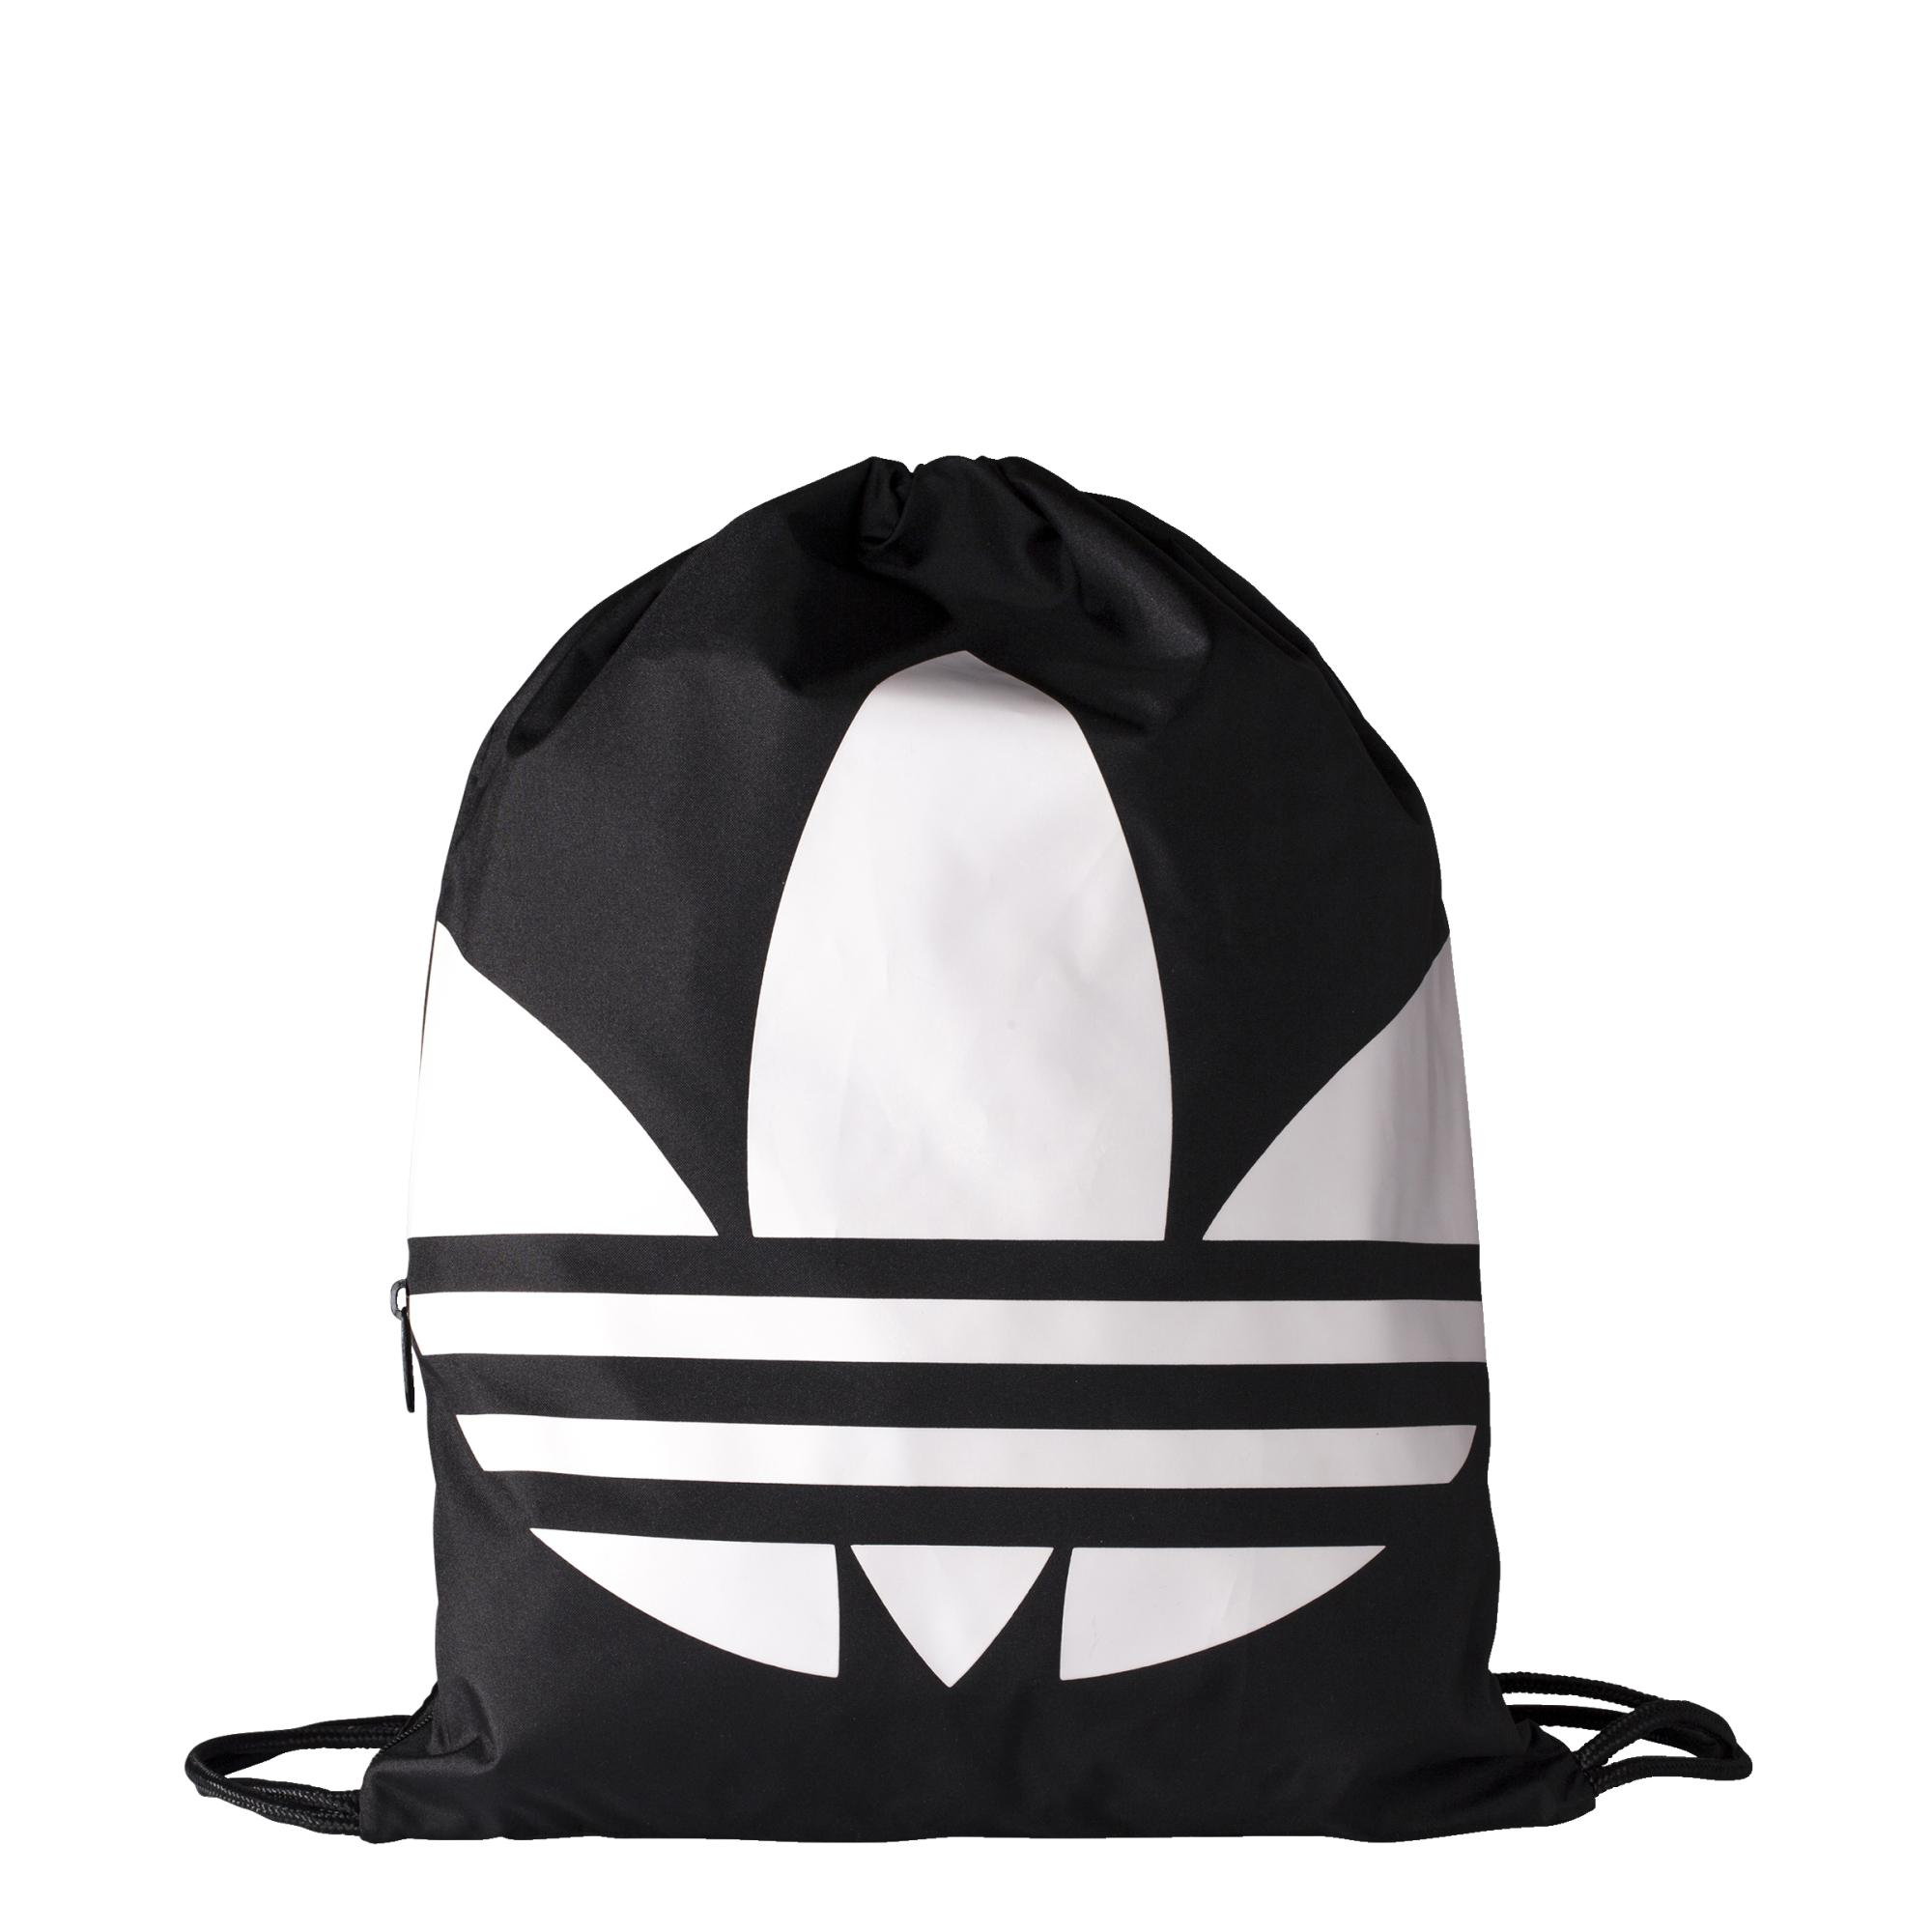 Sack Originals Gym Trefoilnegroblanco Originals Gym Adidas Adidas Originals Trefoilnegroblanco Adidas Gym Sack Sack wPZXikOuT